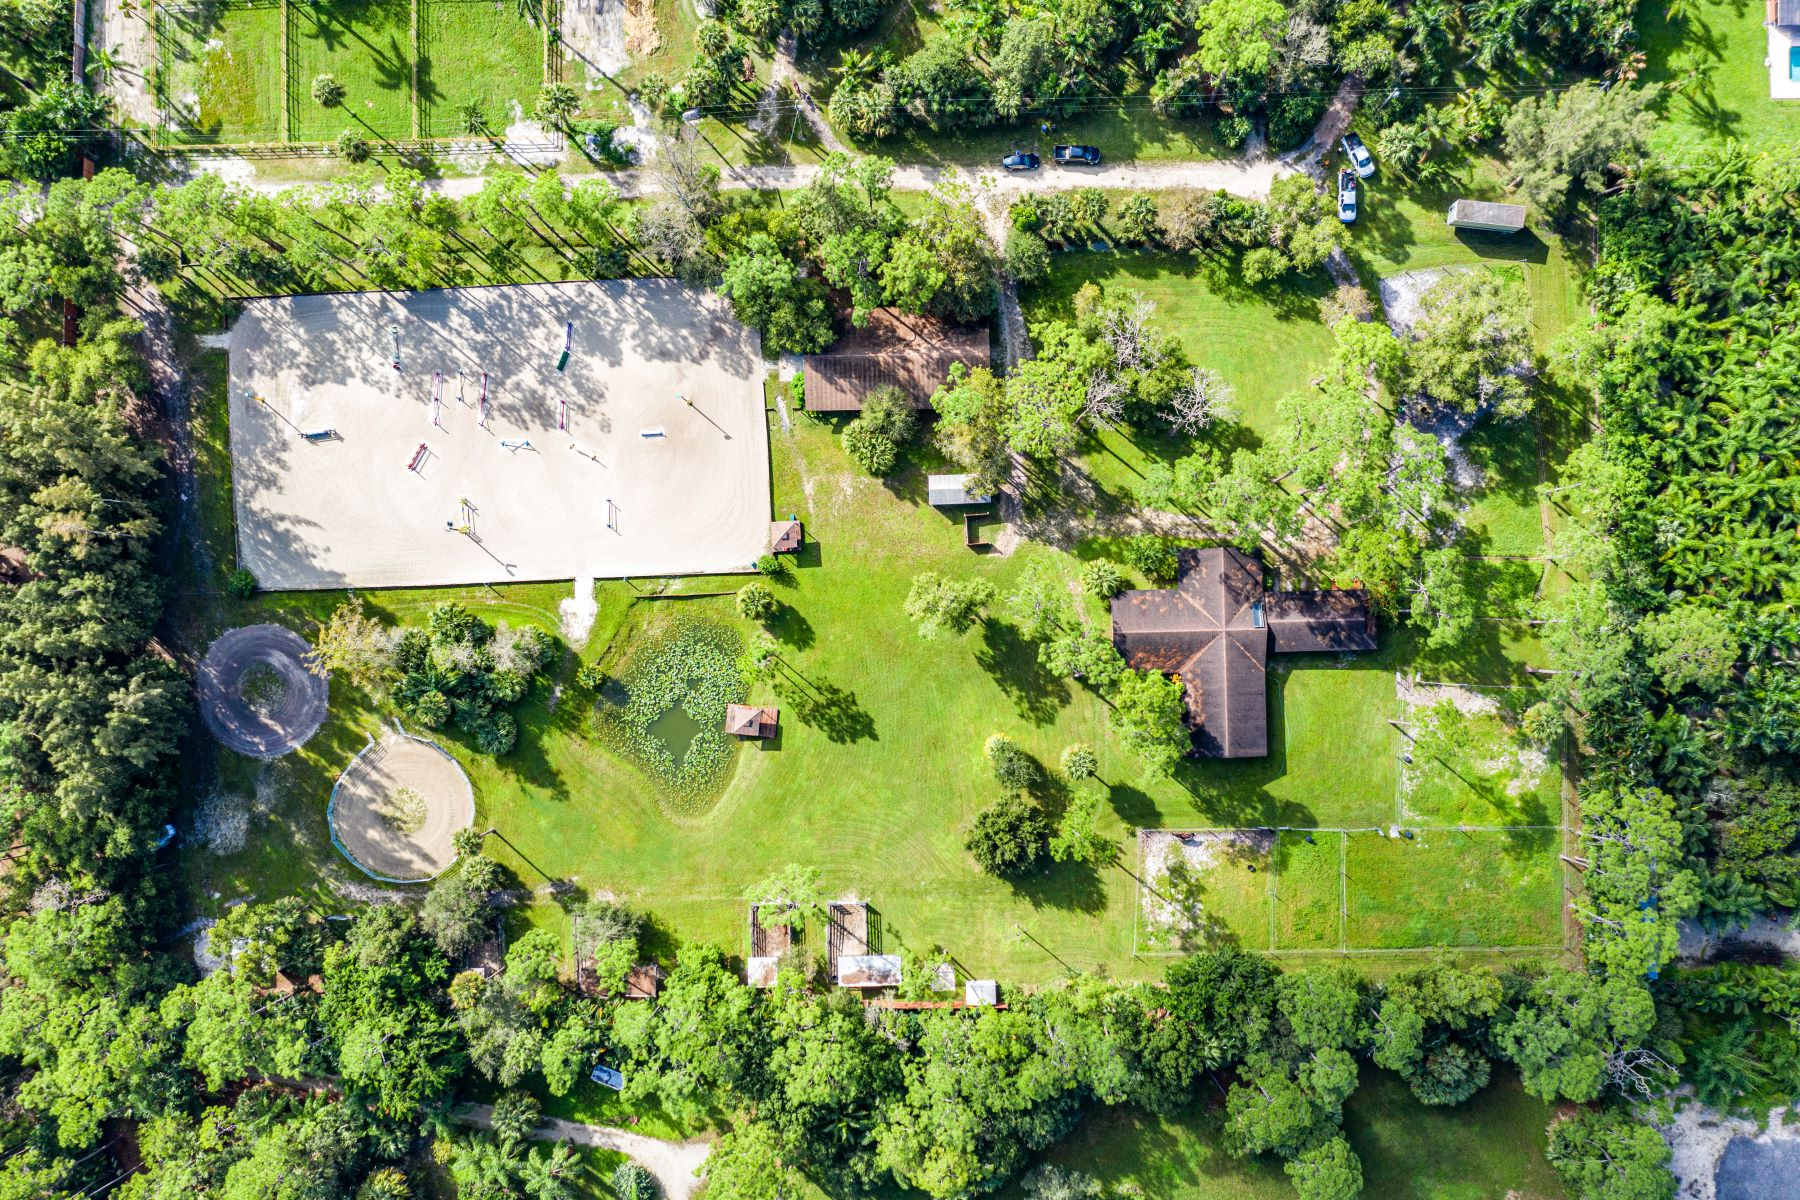 Single Family Homes for Sale at 15201 Timberlane Place, Loxahatchee Groves, FL 33470 15201 Timberlane Place Loxahatchee Groves, Florida 33470 United States